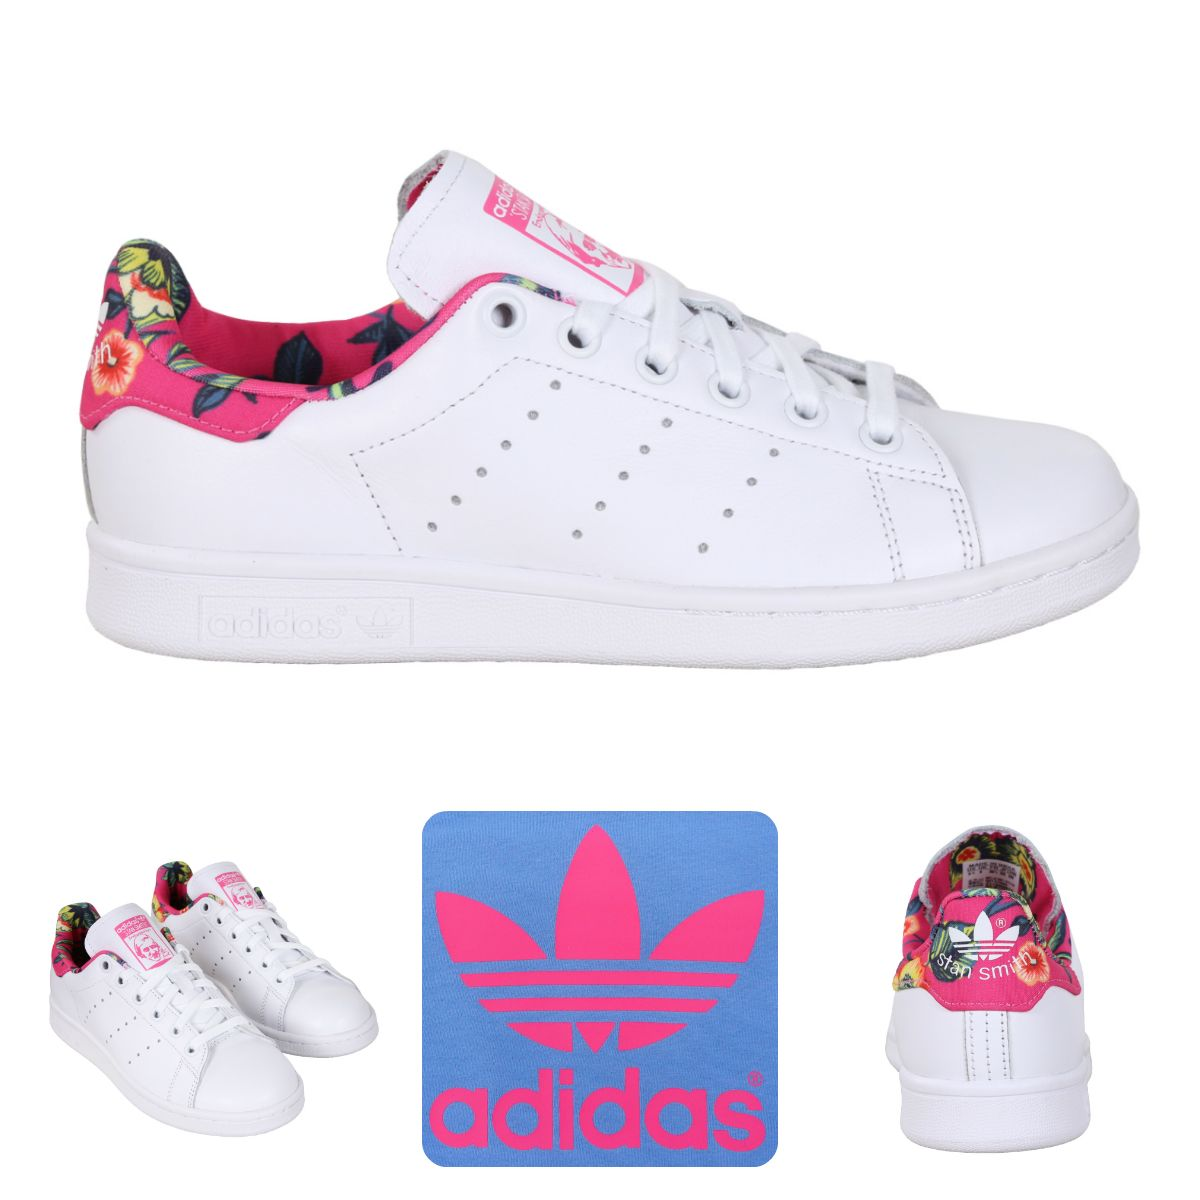 In love with the new adidas  Stan Smith Adidas Wmns Shoes Low Sneakers.   ◻  http://www.hoodboyz.co.uk/product/p170021_adidas-shoe-wmns-stan-smith-low-sneaker-white-pink.html